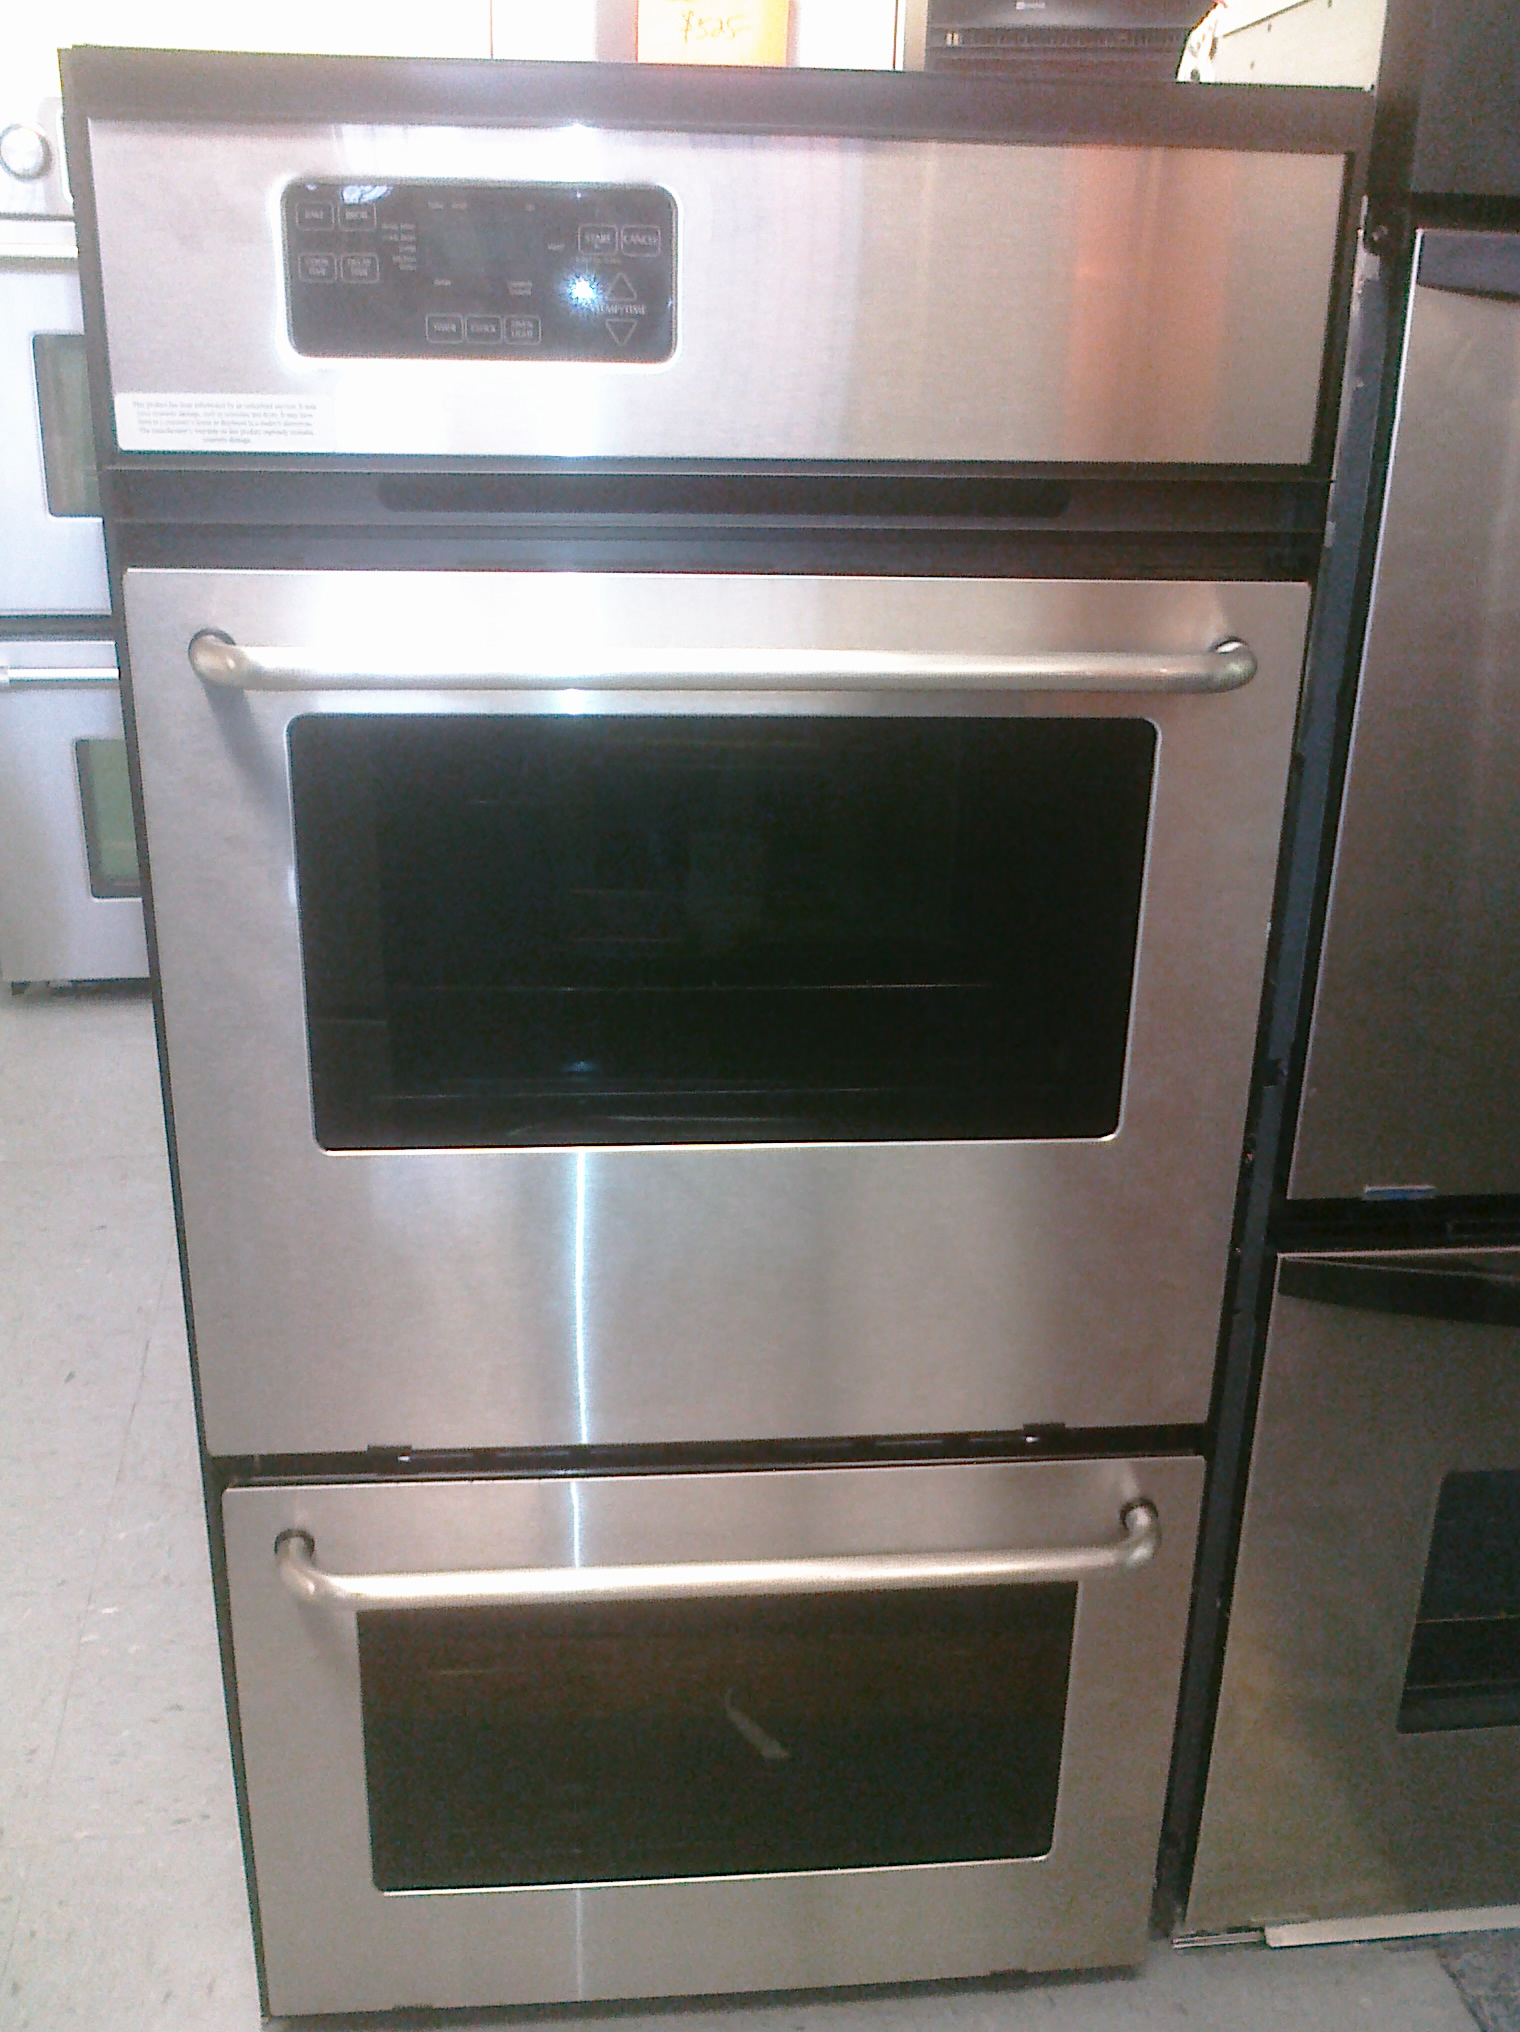 (9) Maytag CWG3600AAS 24″ Built-In Gas Oven With Broiler, Stainless Steel